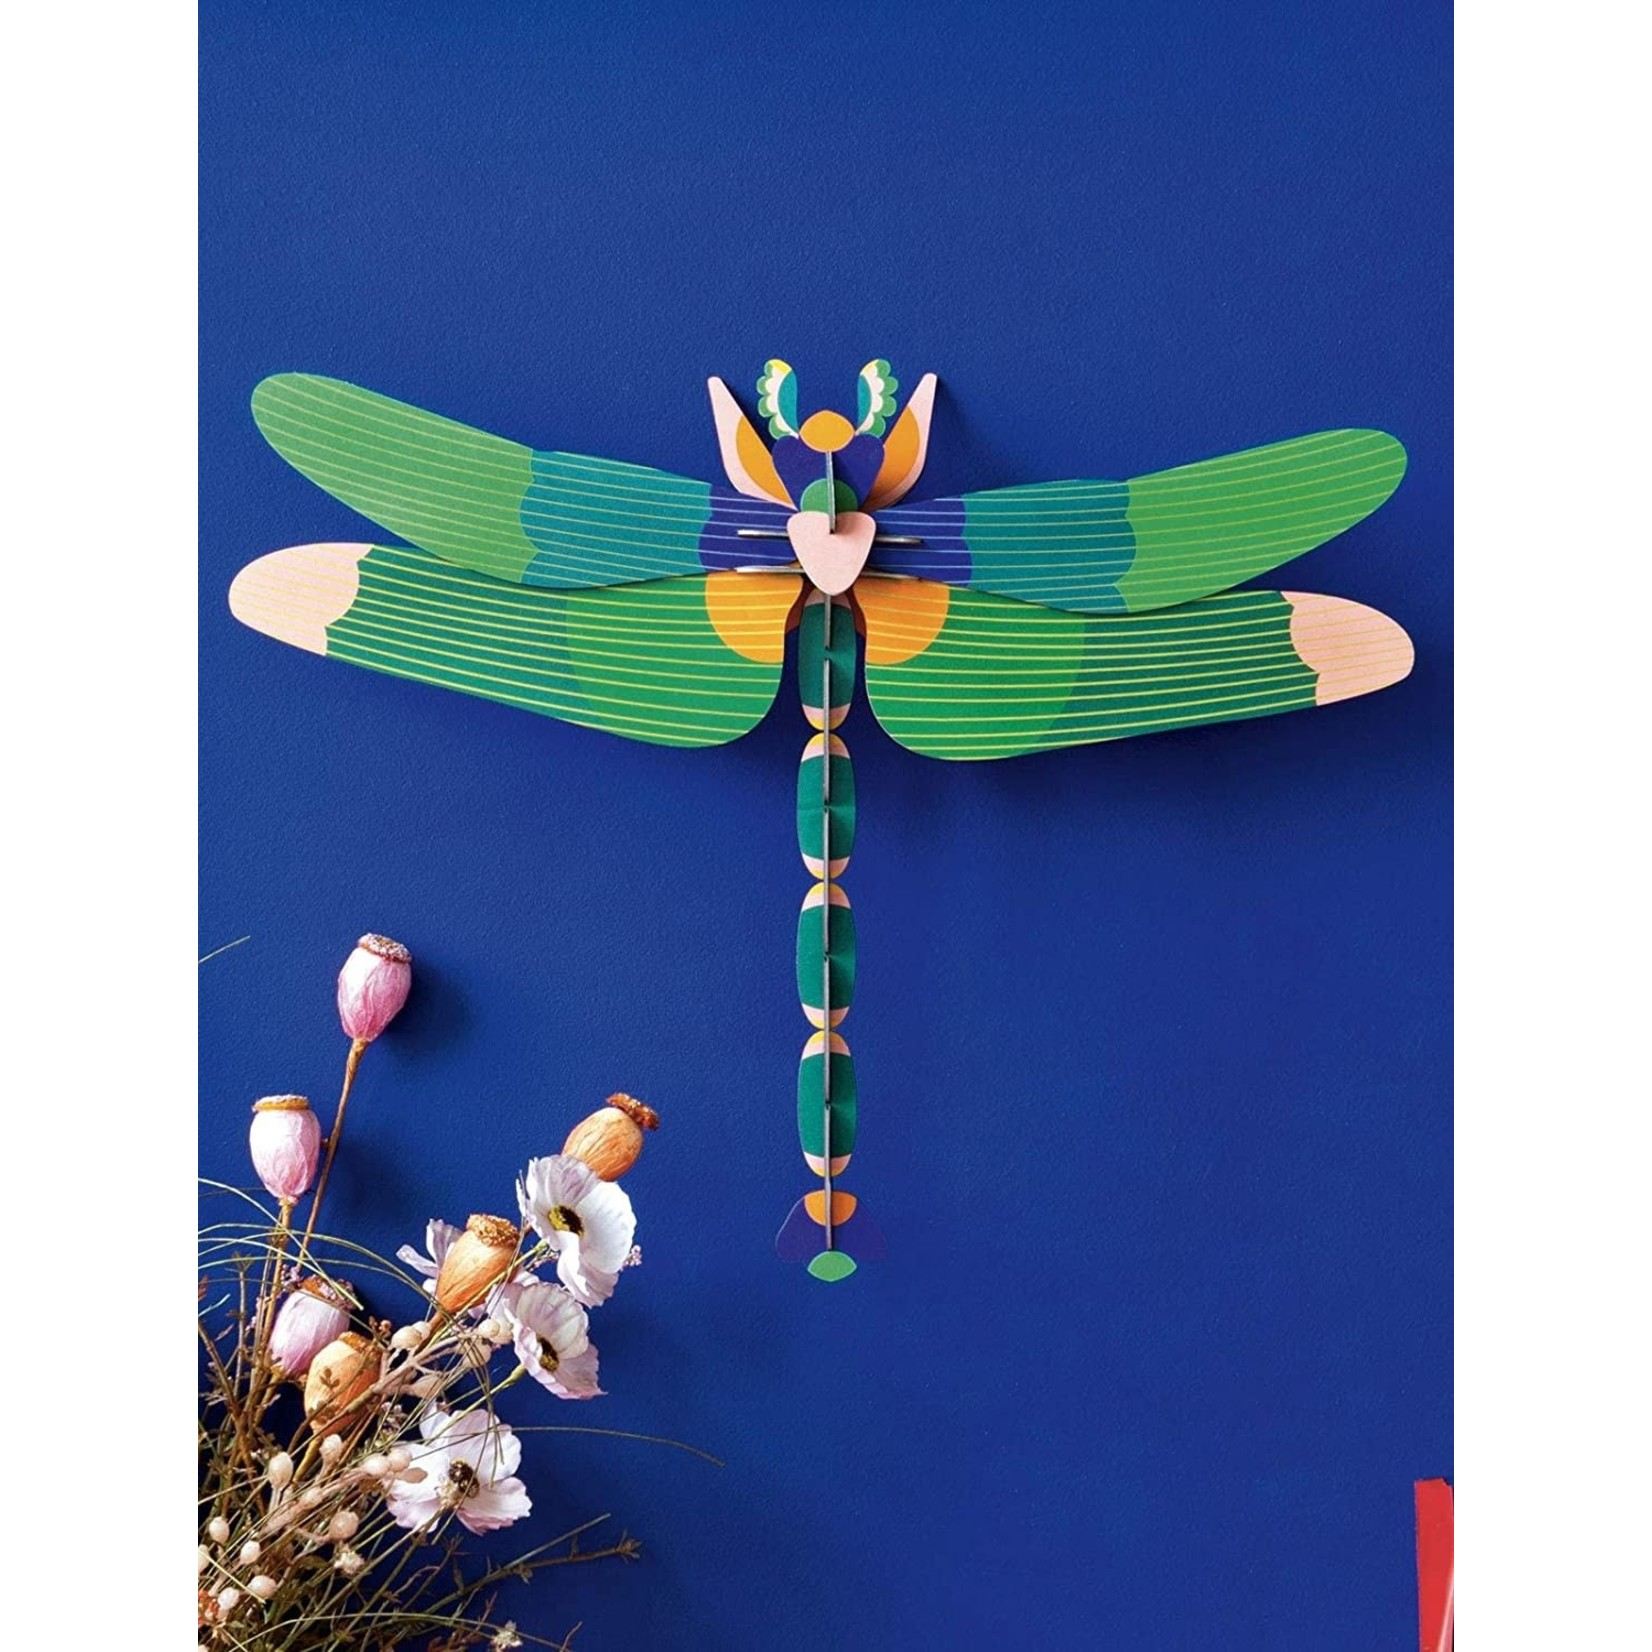 STUDIO ROOF STUDIO ROOF -wall decoration-Giant dragonfly green